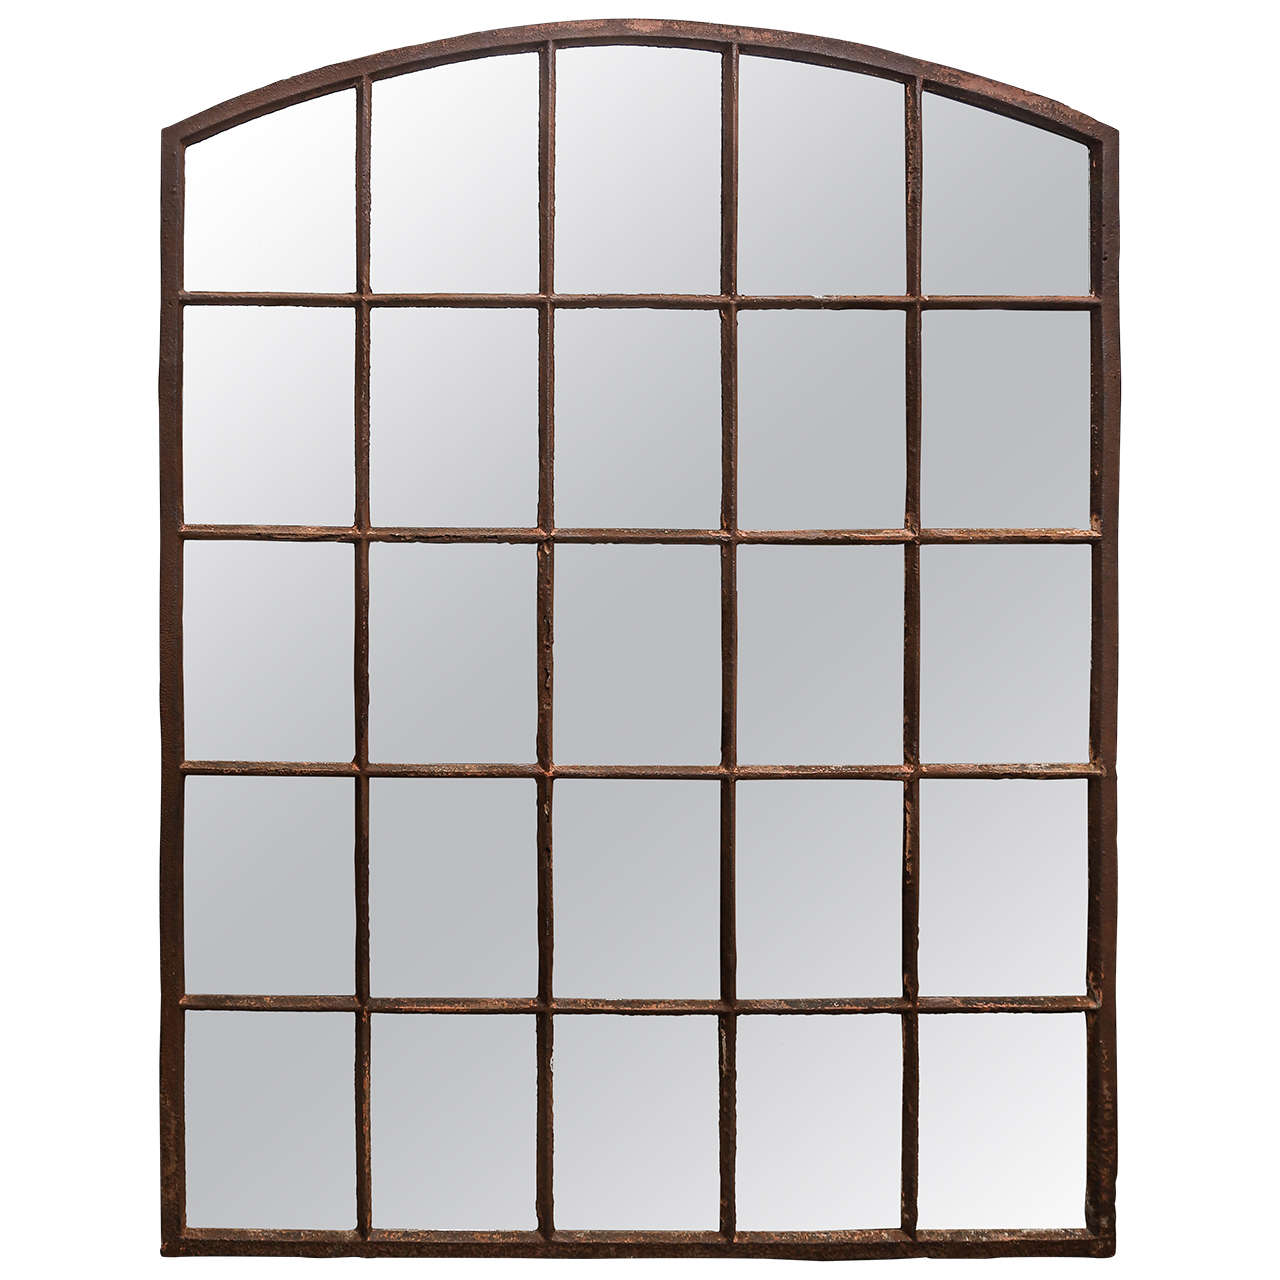 Industrial Wall Mirror 19th century industrial window or mirror at 1stdibs